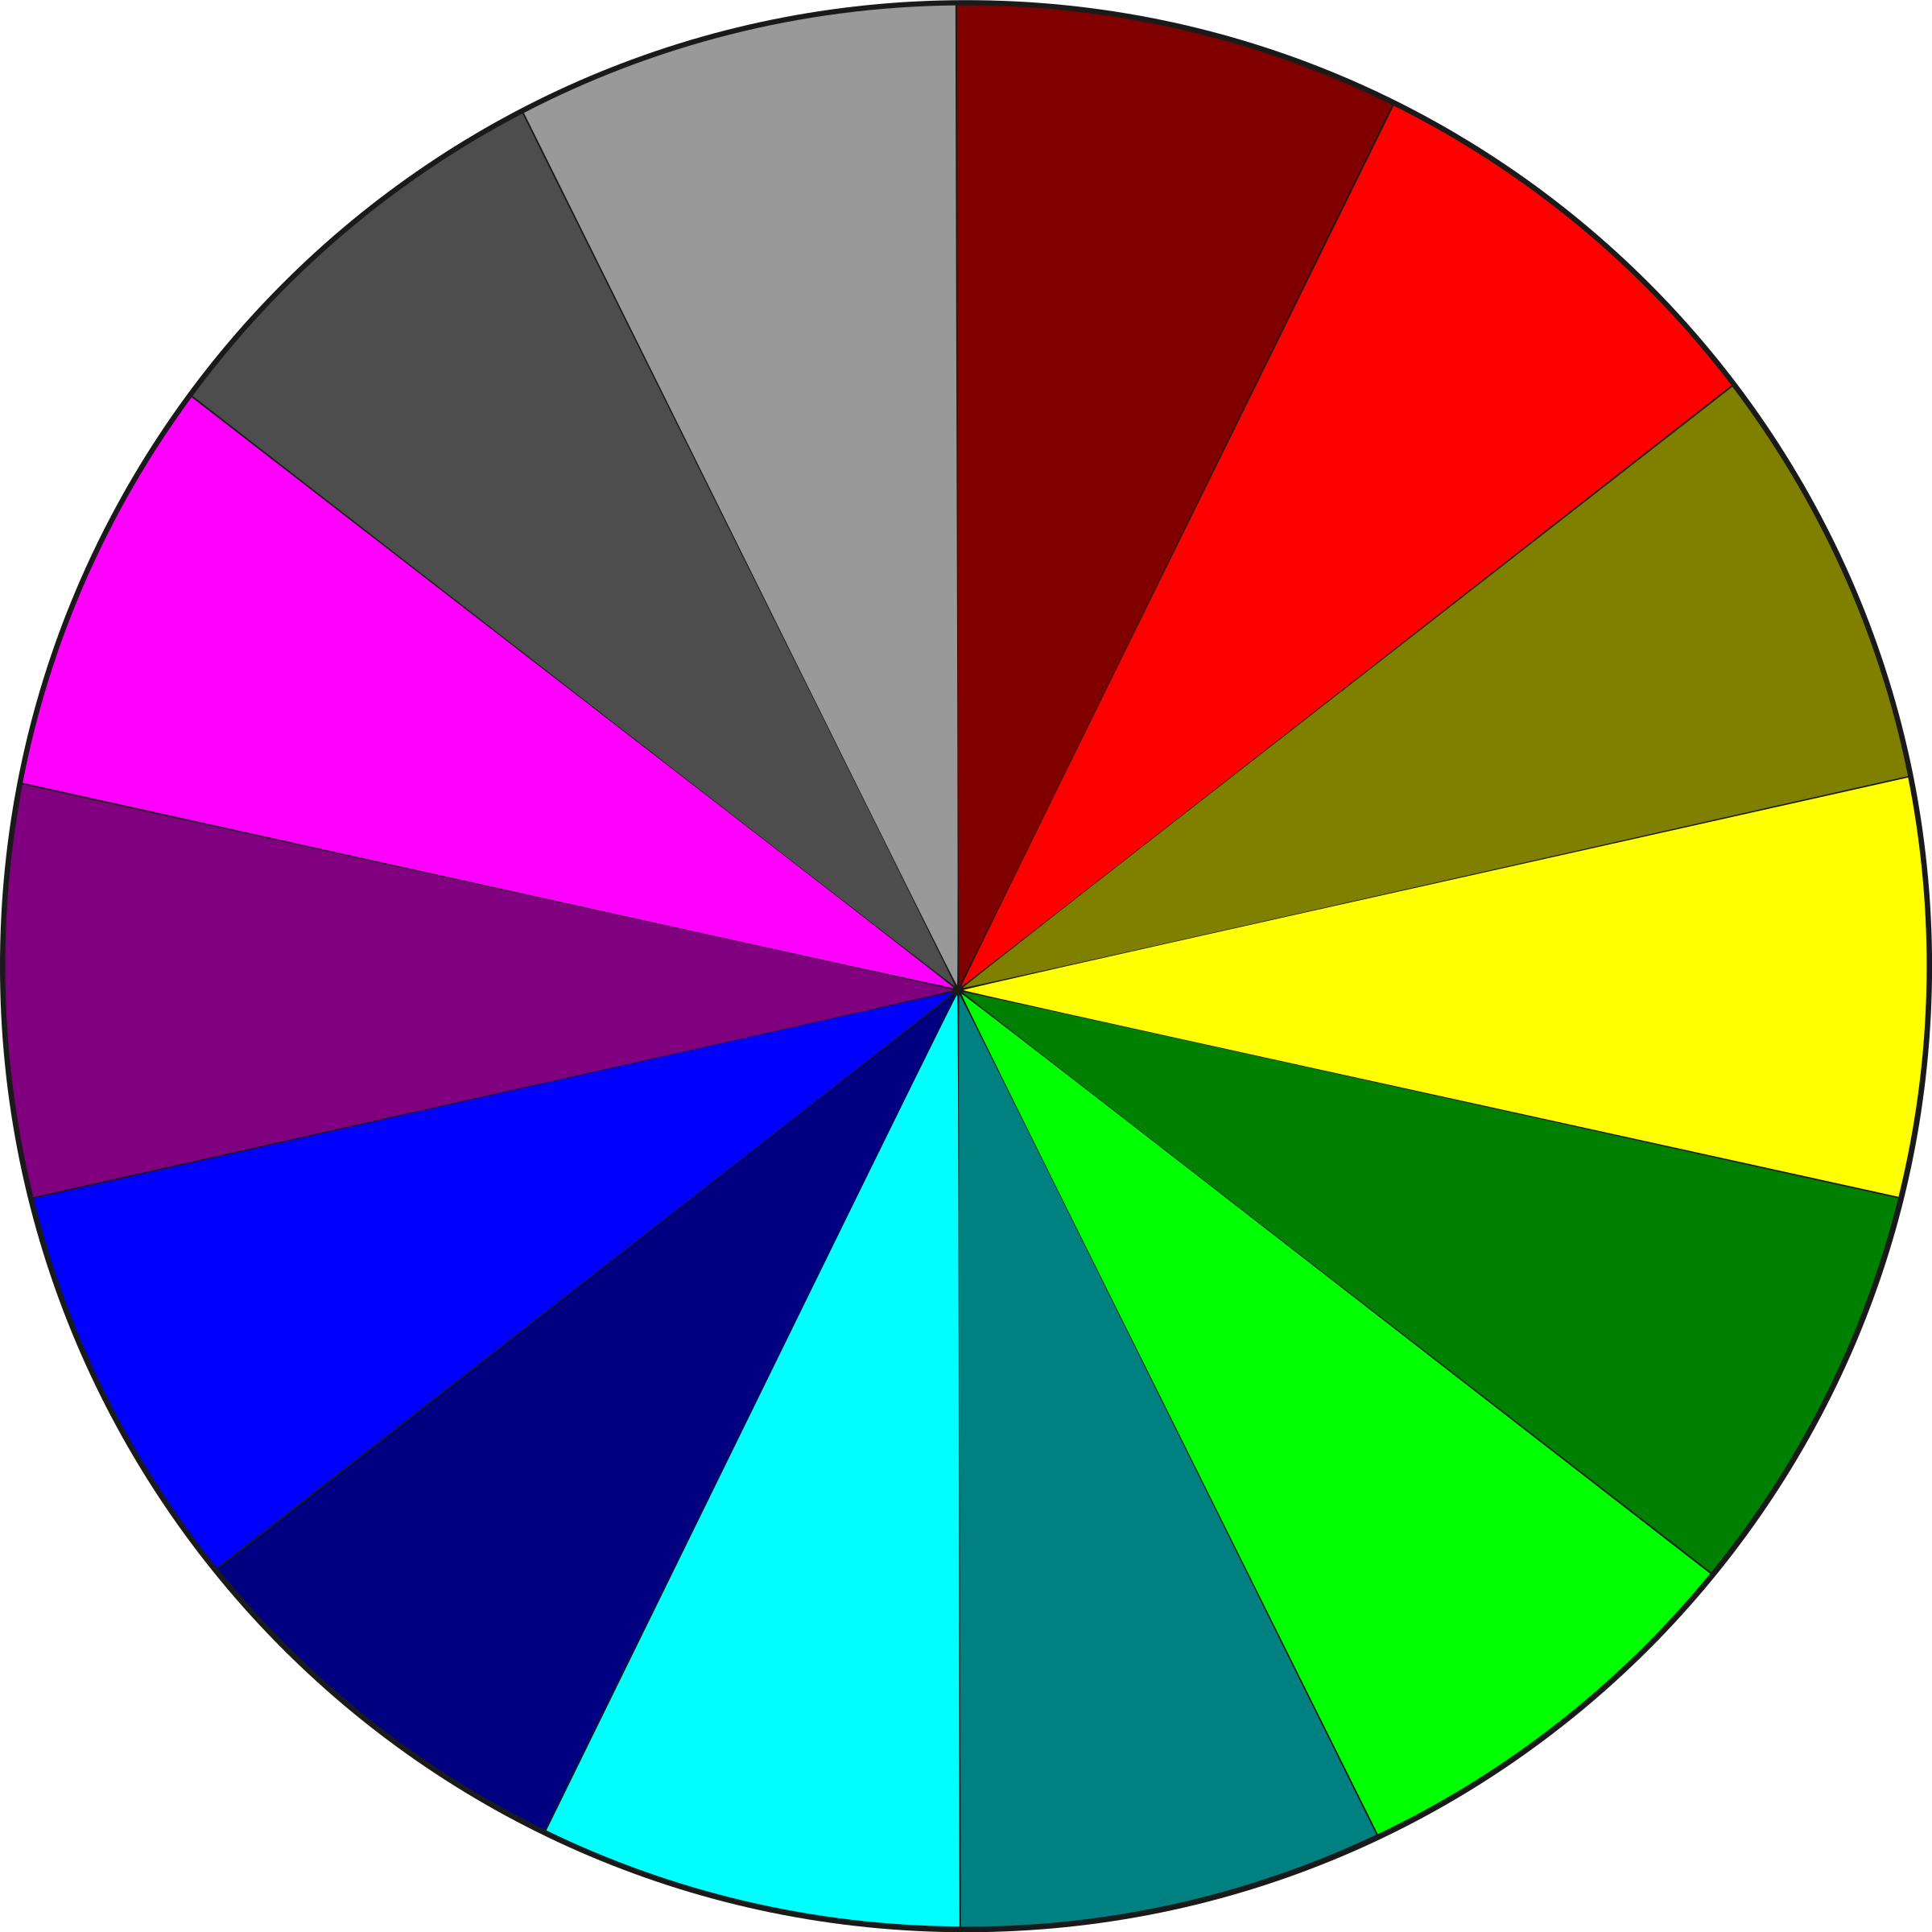 Pie Chart by vwanweb